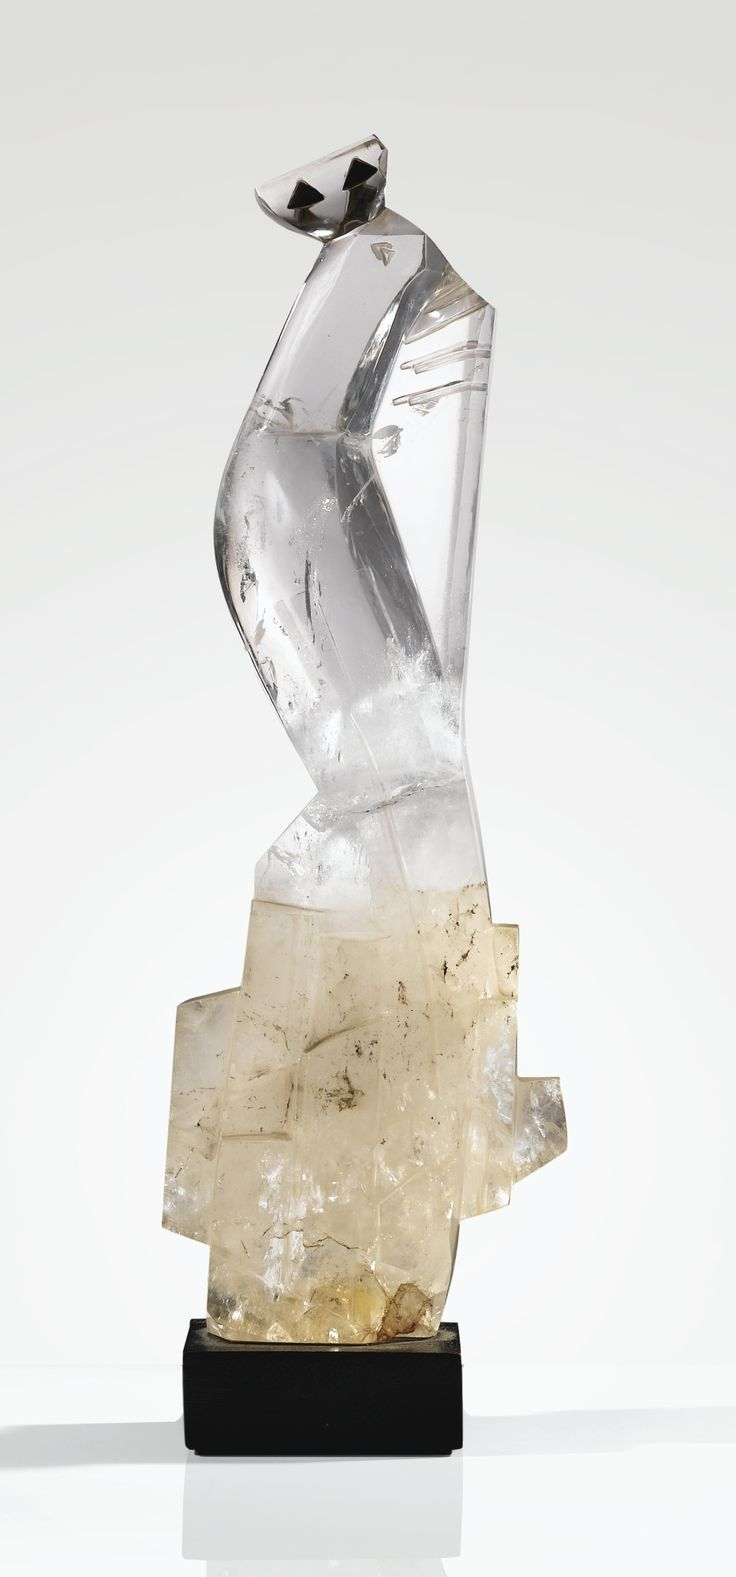 'PAON', A UNIQUE ROCK CRYSTAL AND OBSIDIEN SCULPTURE BY JOSEPH CSAKY, ON LATER WOODEN BASE, 1930 | Sotheby's